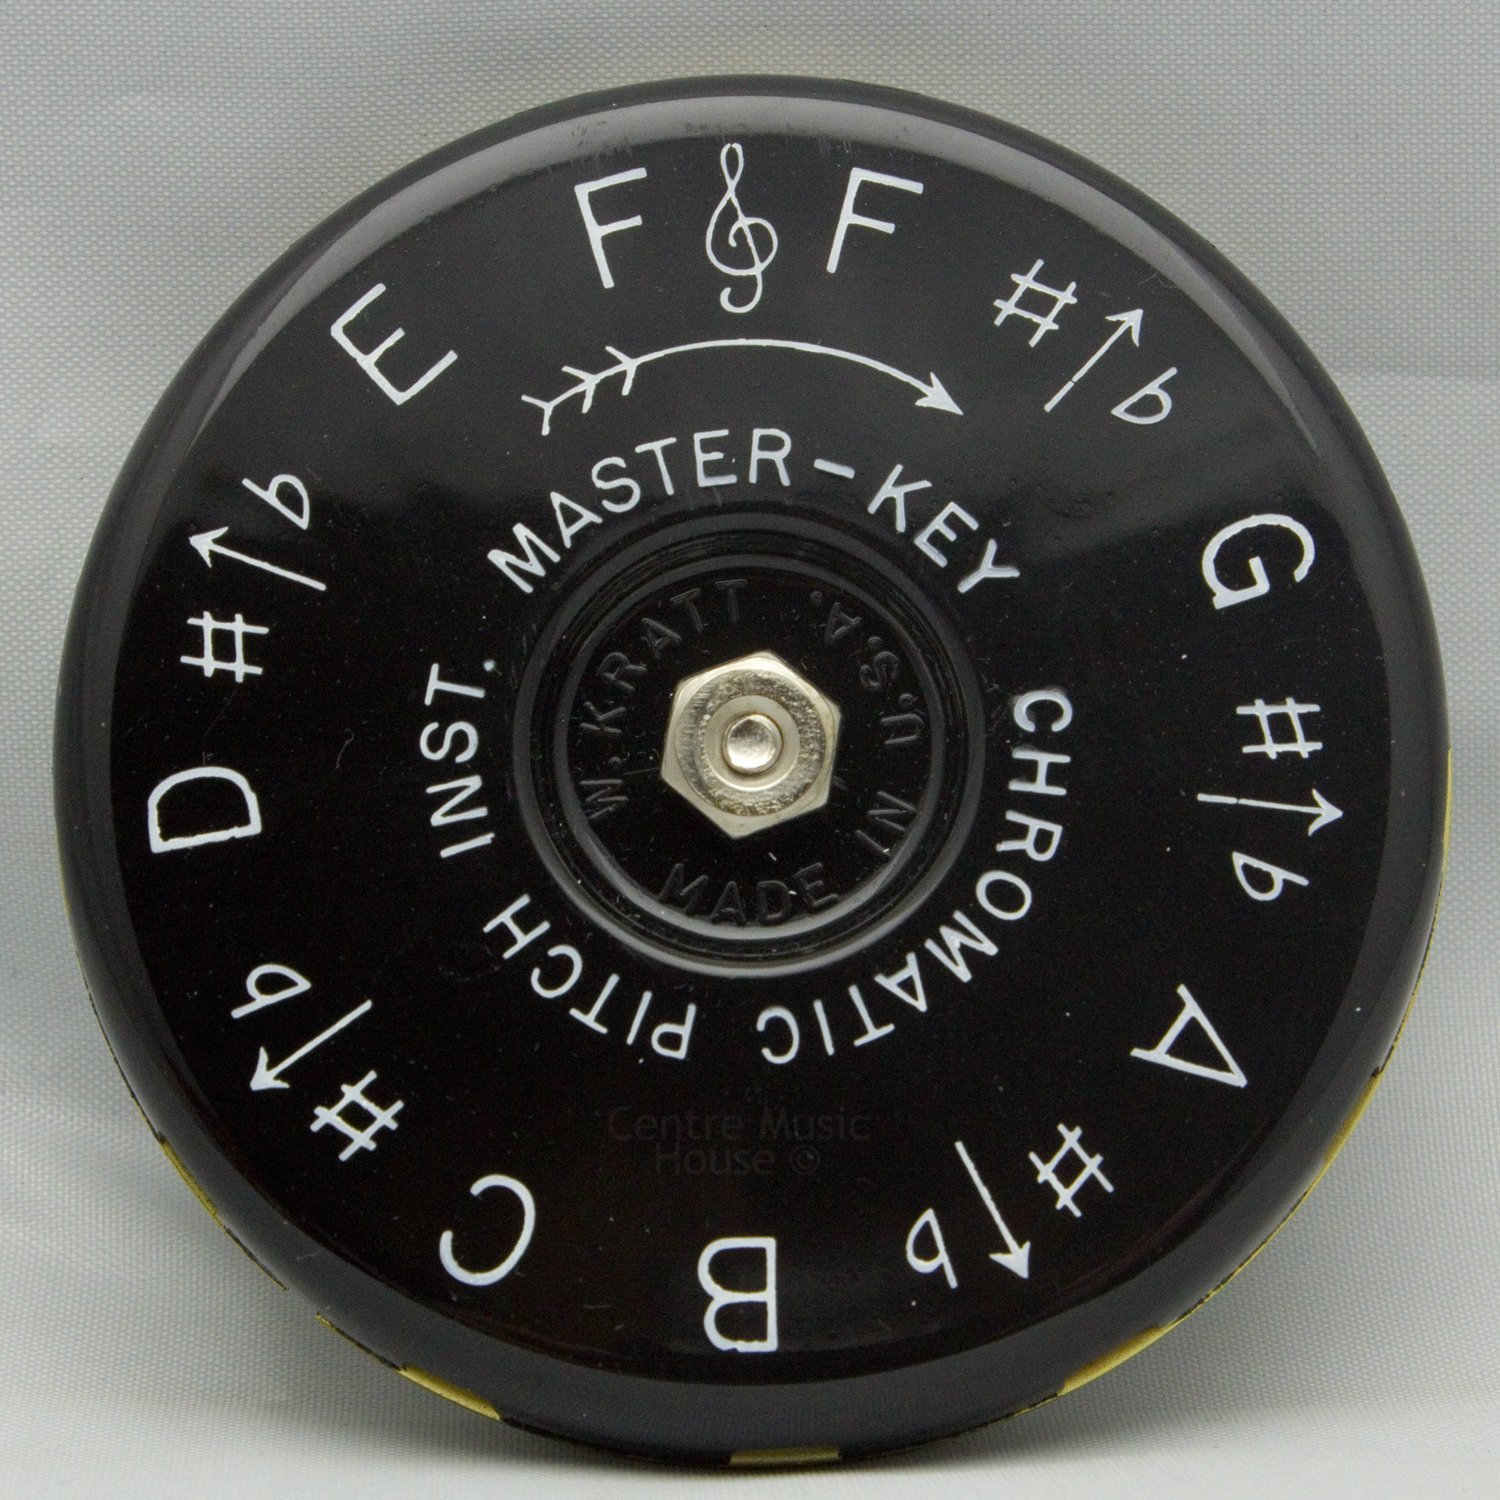 Kratt MK1 Master Key Chromatic Pitch Pipe (F to F)